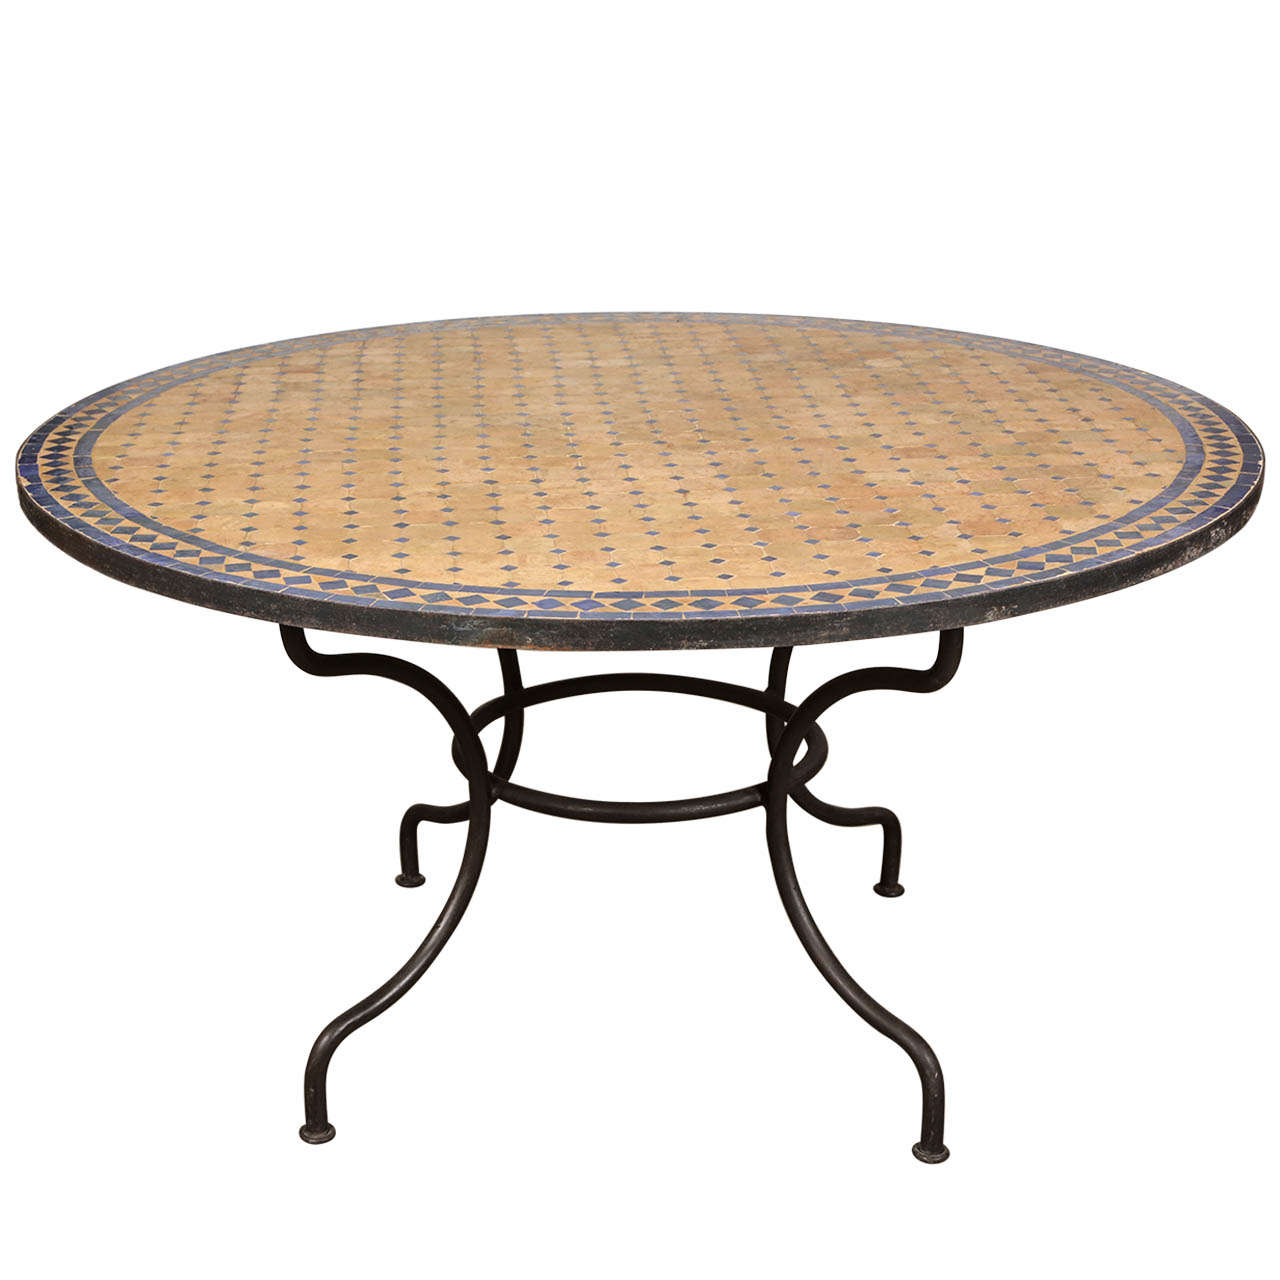 outdoor mosaic tile table at 1stdibs. Black Bedroom Furniture Sets. Home Design Ideas